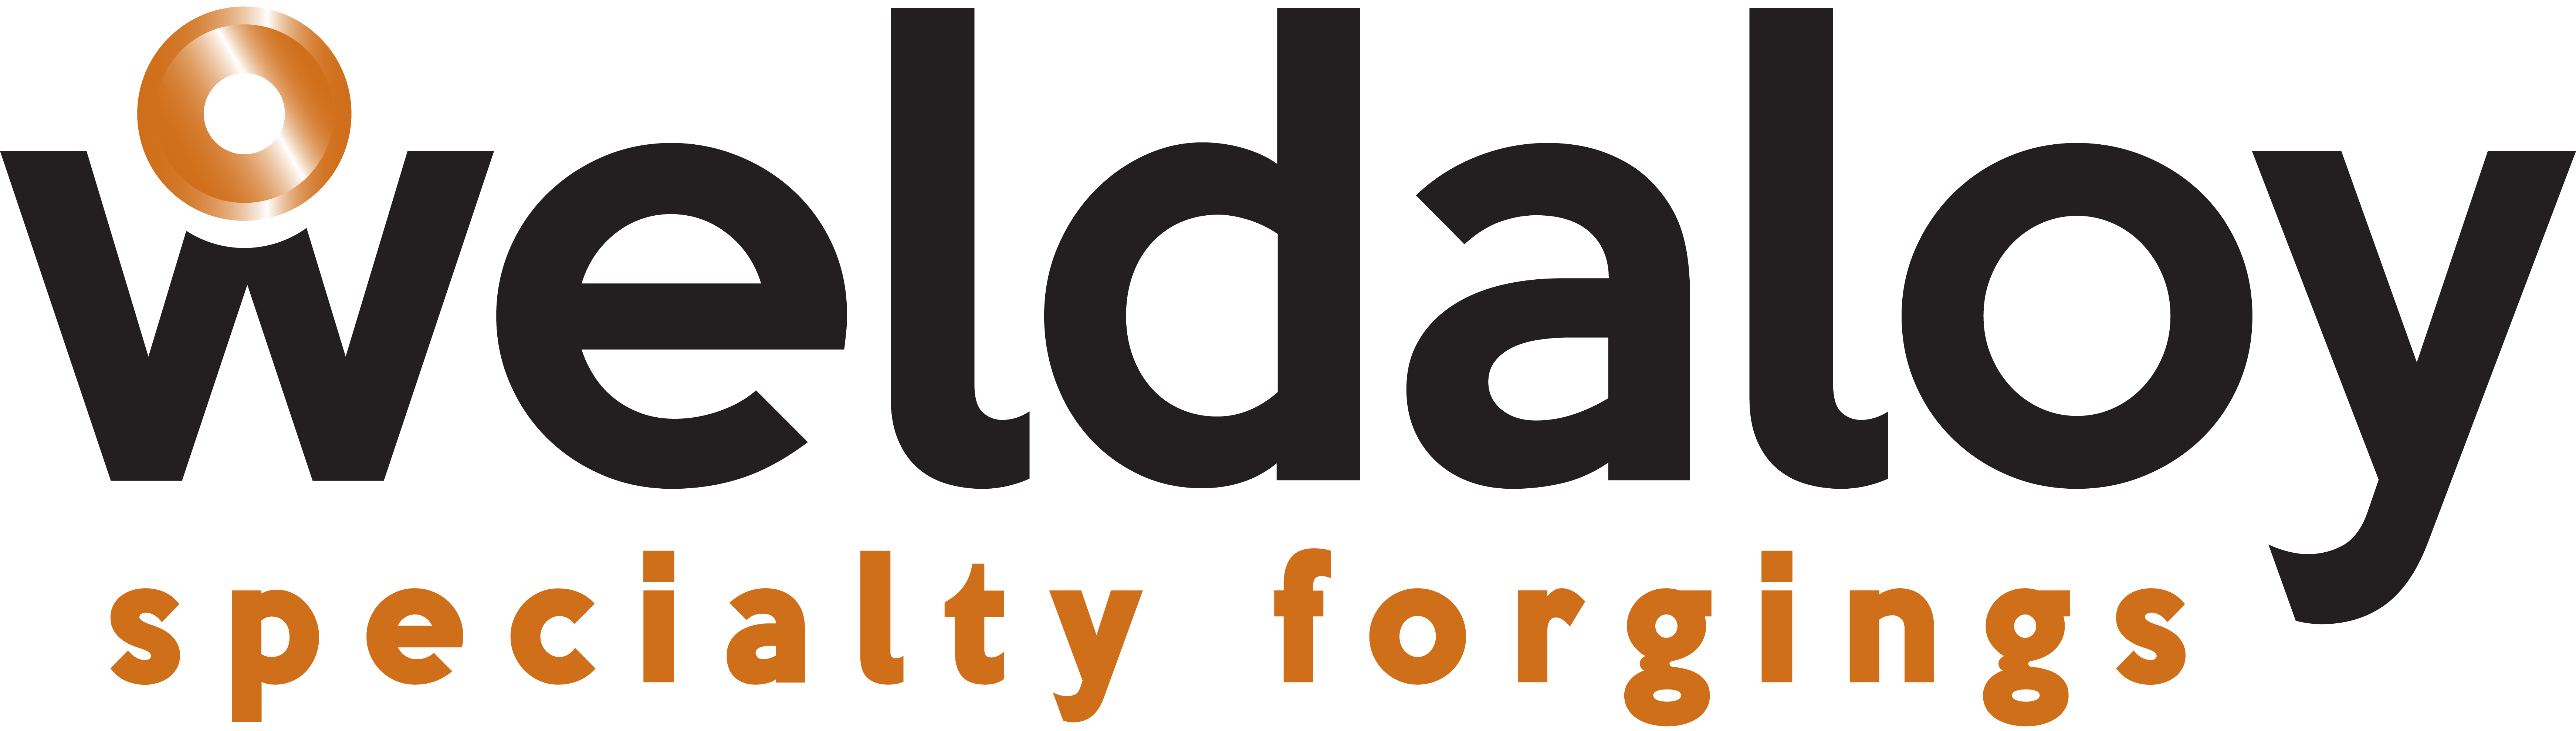 Weldaloy-2019Logo-Final-RGB_orange-dimensional